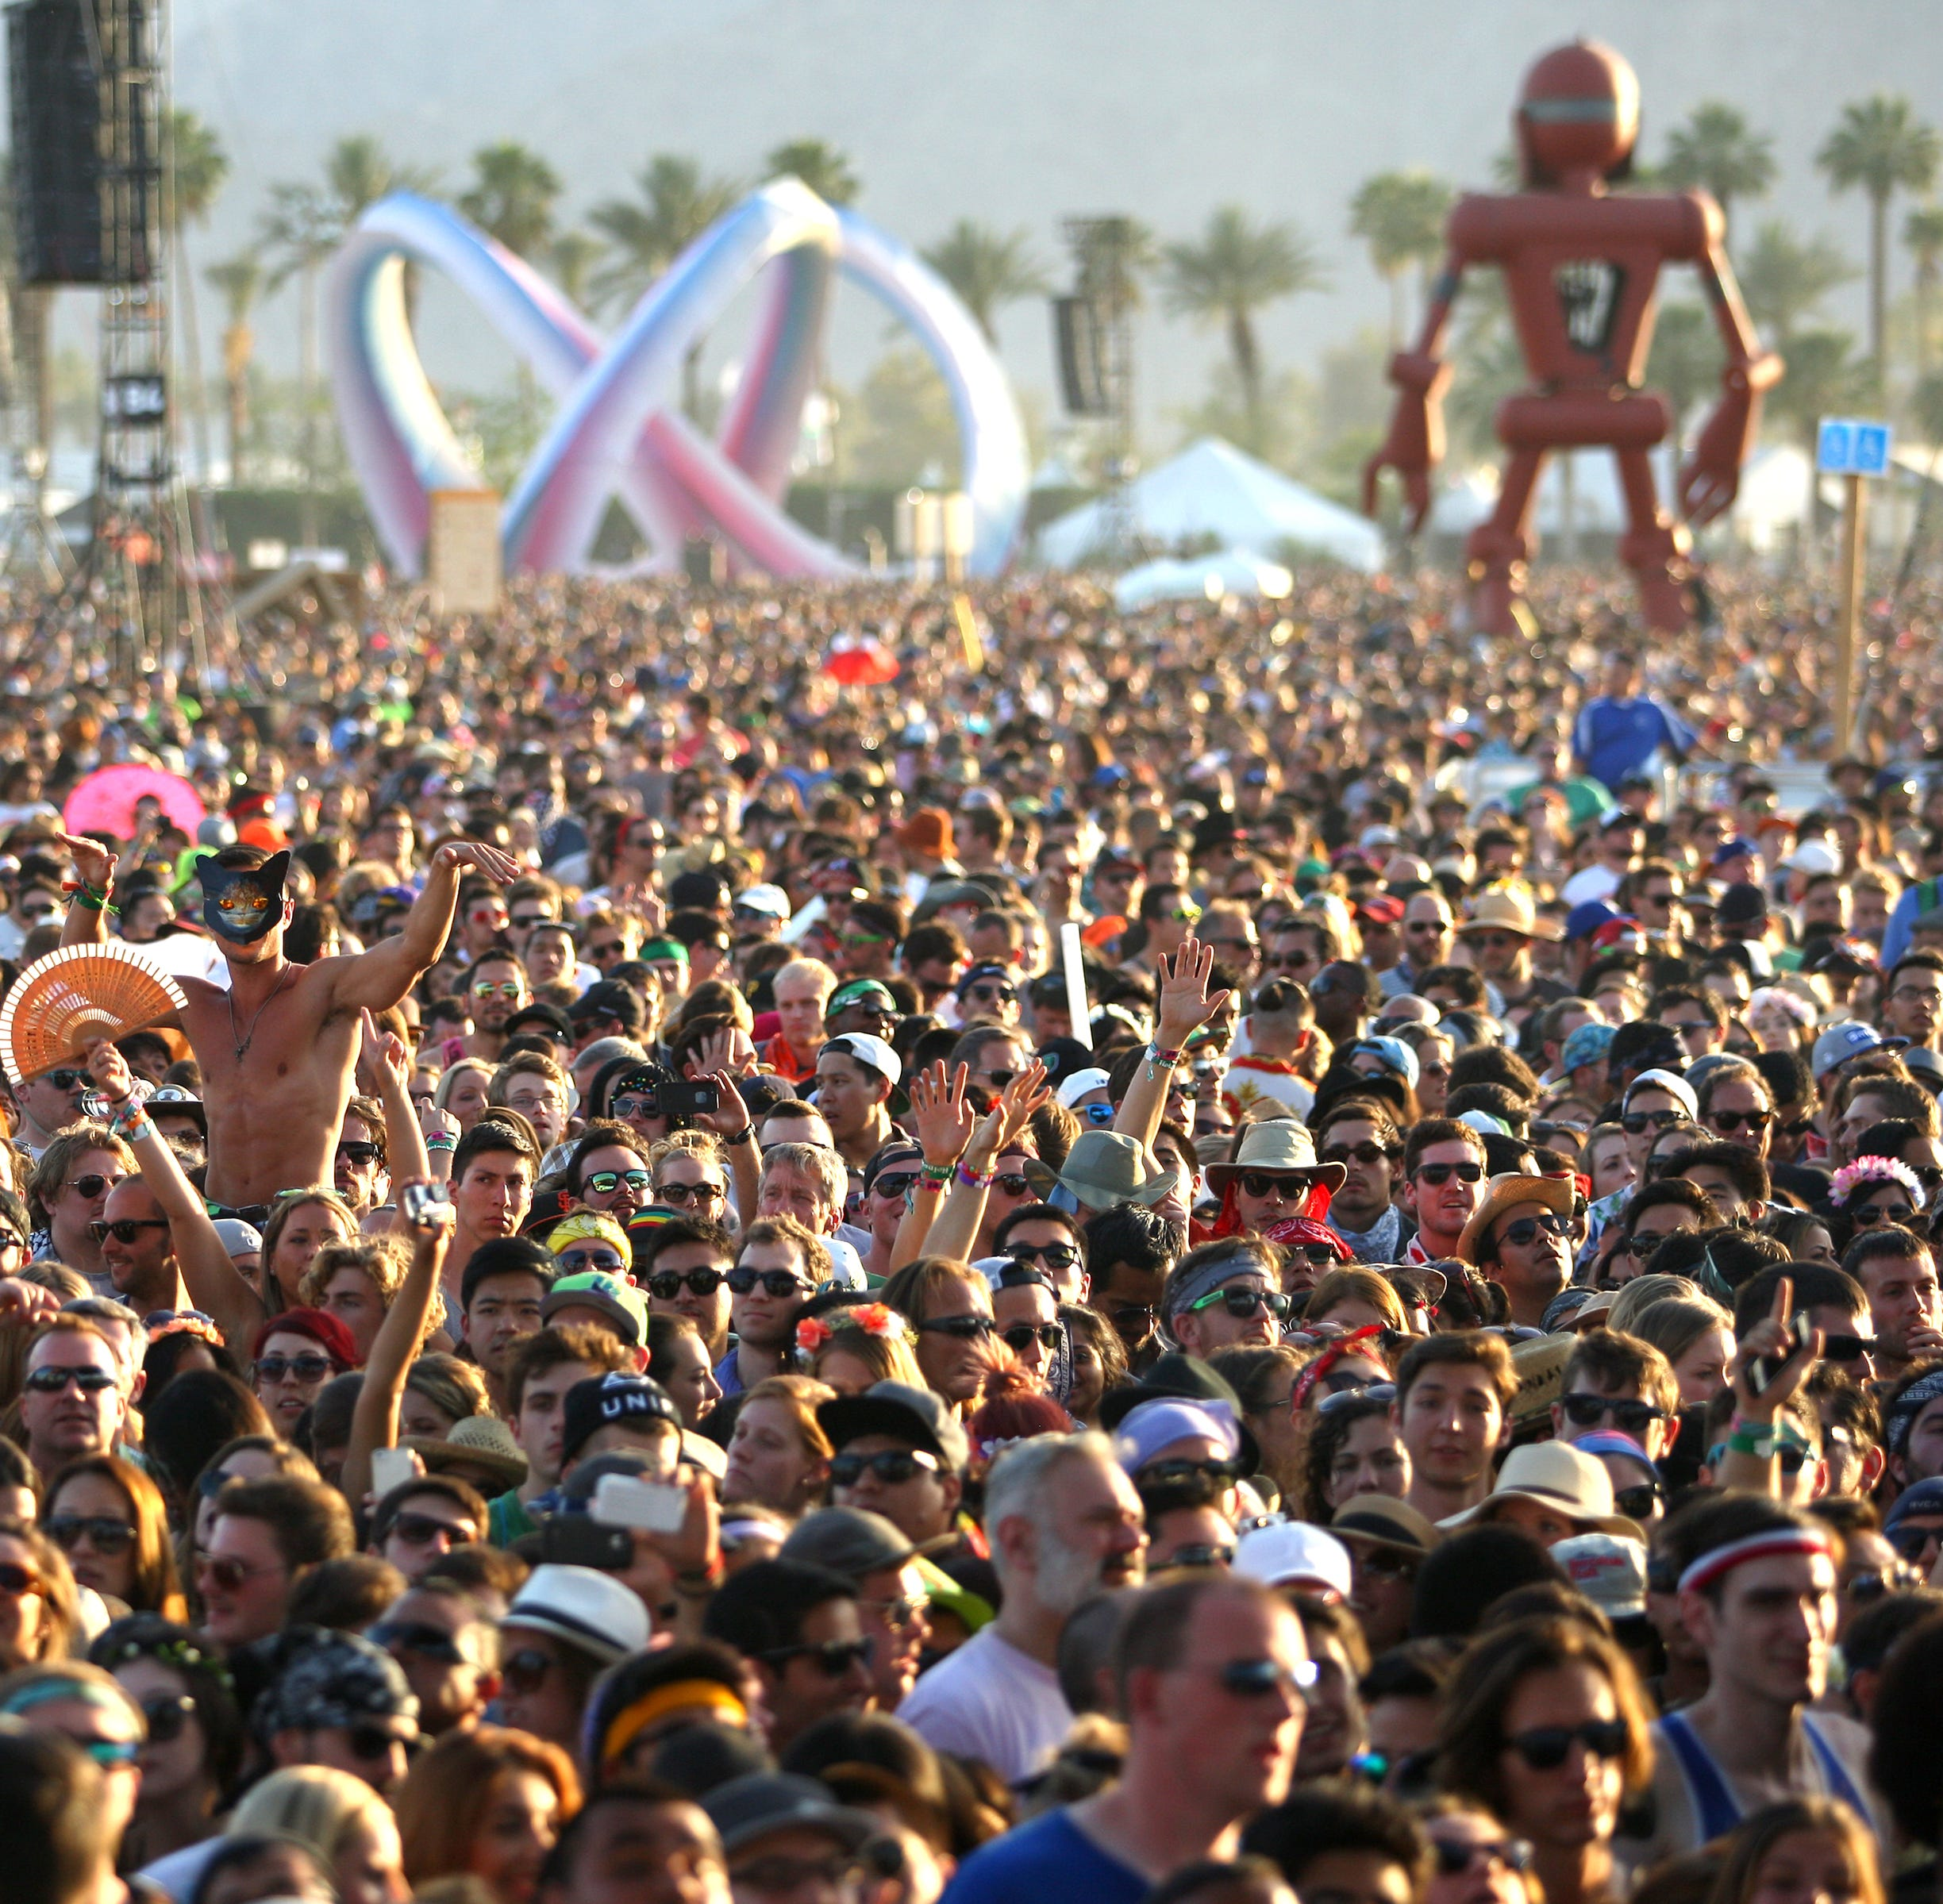 America's biggest music festivals are more skippable than ever